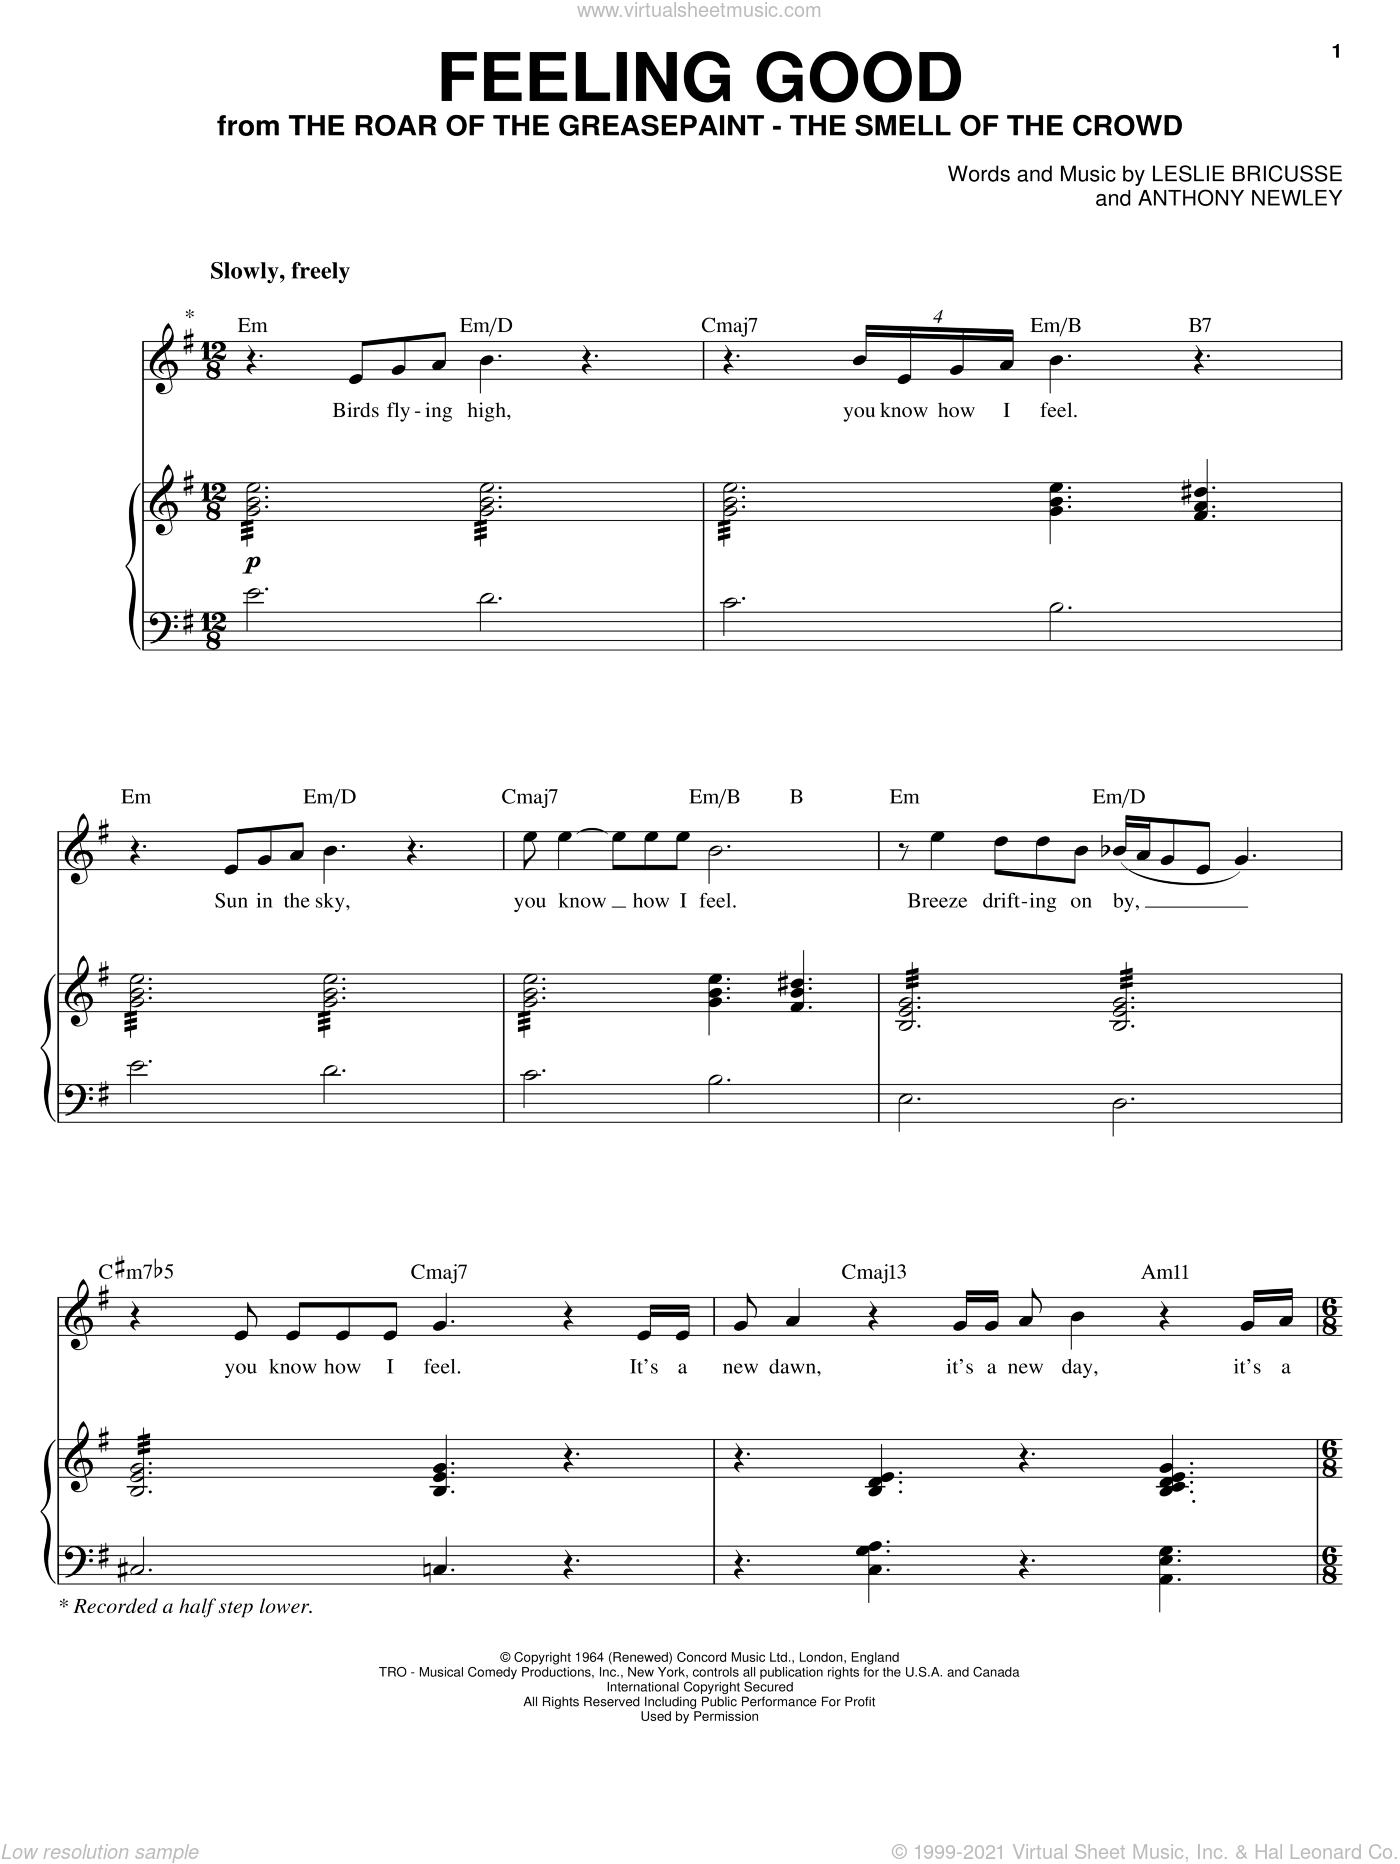 Feeling Good sheet music for voice and piano by Leslie Bricusse